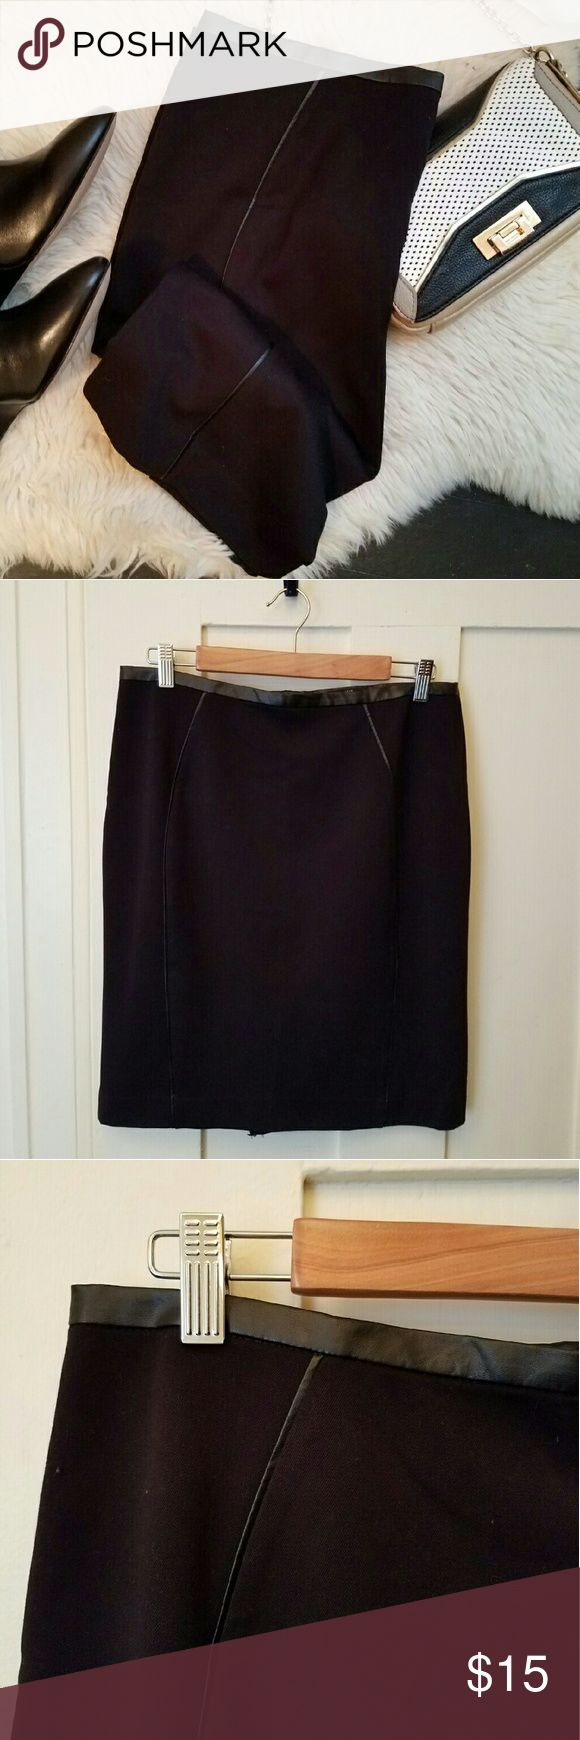 """H&M leather trimmed pencil skirt NWT black pencil skirt by H&M. Cute faux leather trim on the front and back and at the waist. Zipper closure, back vent. Size 12, but runs small. Waist measures 16"""" when lying flat, 21"""" long. Booties and purse are also for sale in my closet! H&M Skirts Pencil"""